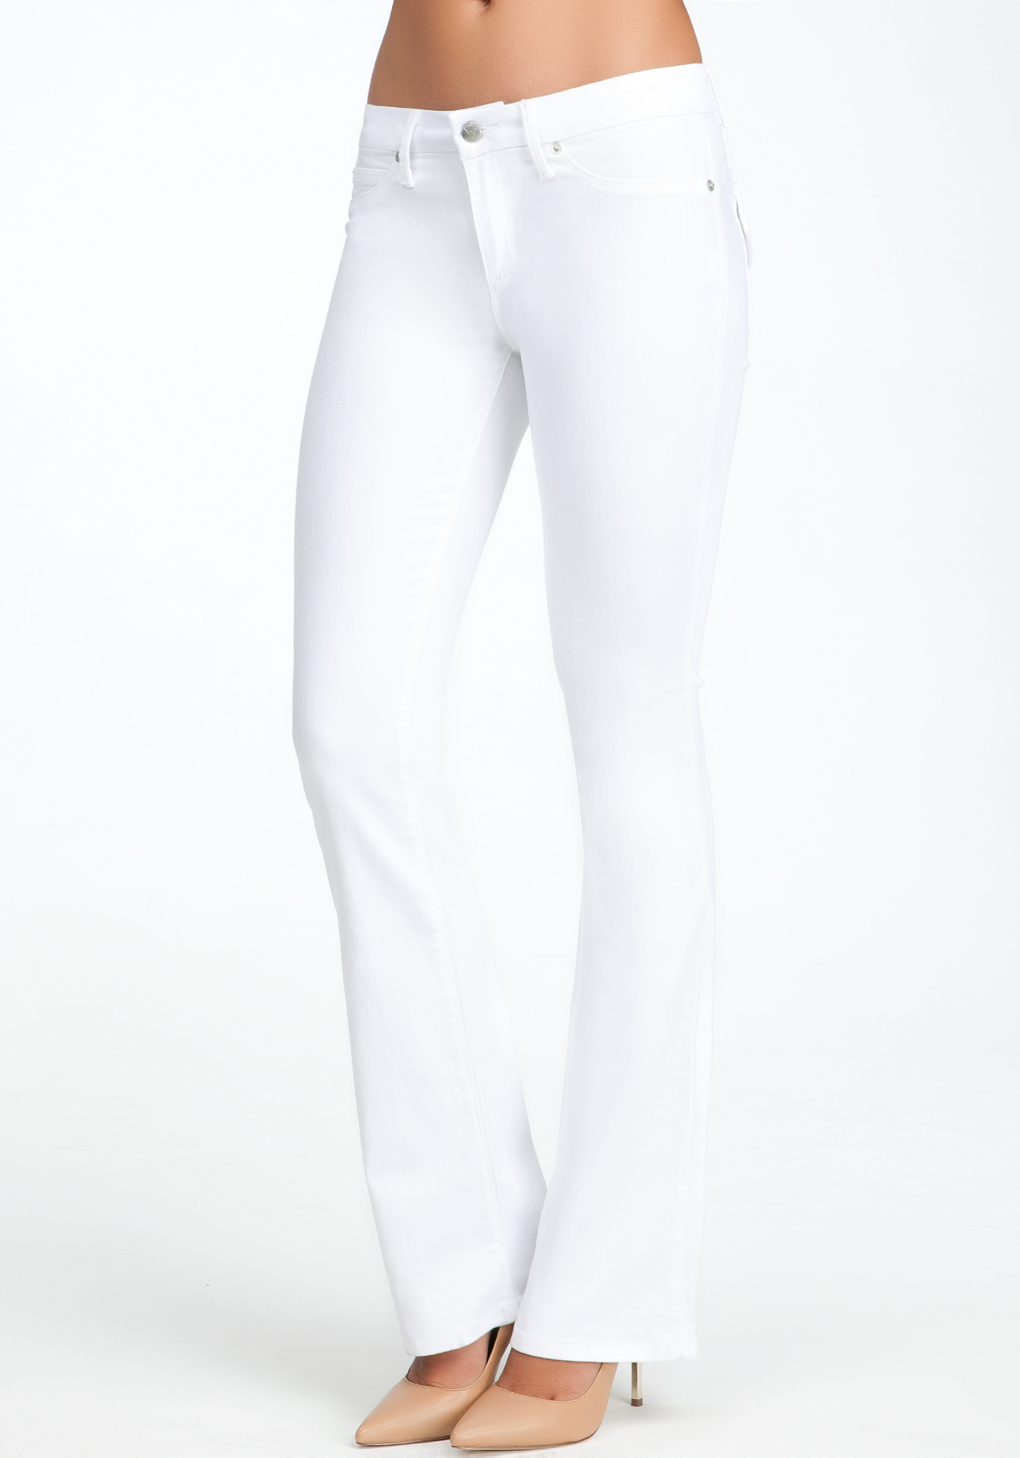 Bebe Flap Pocket Bootcut Jeans in White | Lyst